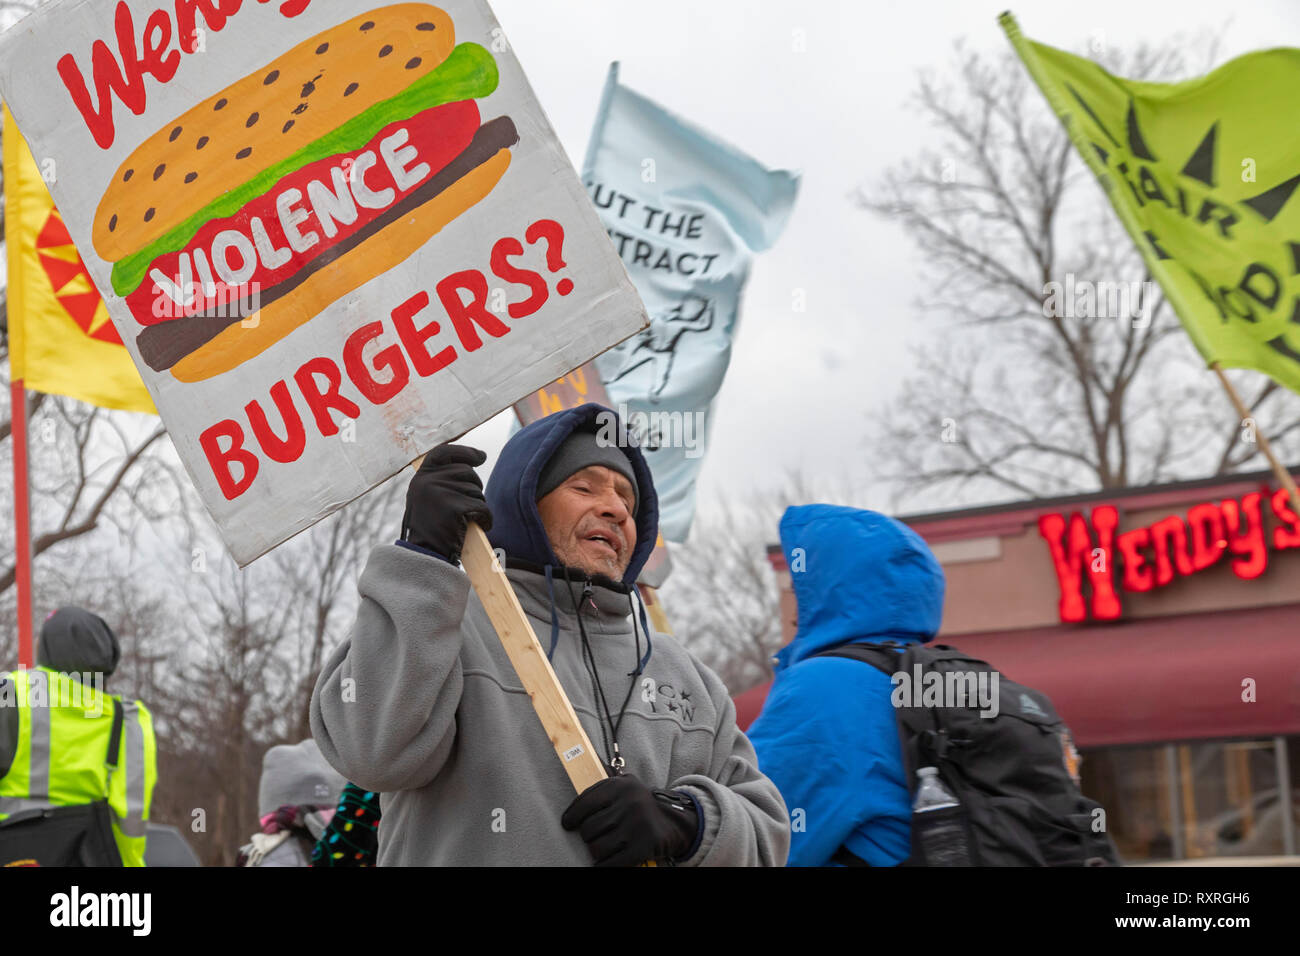 Ypsilanti, Michigan USA. 9th Mar 2019.  Members of the Coalition of Immokalee Workers and their supporters rally at a Wendy's fast food restaurant, asking the company to pay a penny a pound more for the Florida tomatoes it buys. The additional penny would go to improve wages for Florida farmworkers. The rally was part of a tour, targeting Wendy's stores in several university towns. CIW wants the universities to end their relationships with Wendy's until the chain joins the Fair Food Program. Credit: Jim West/Alamy Live News - Stock Image